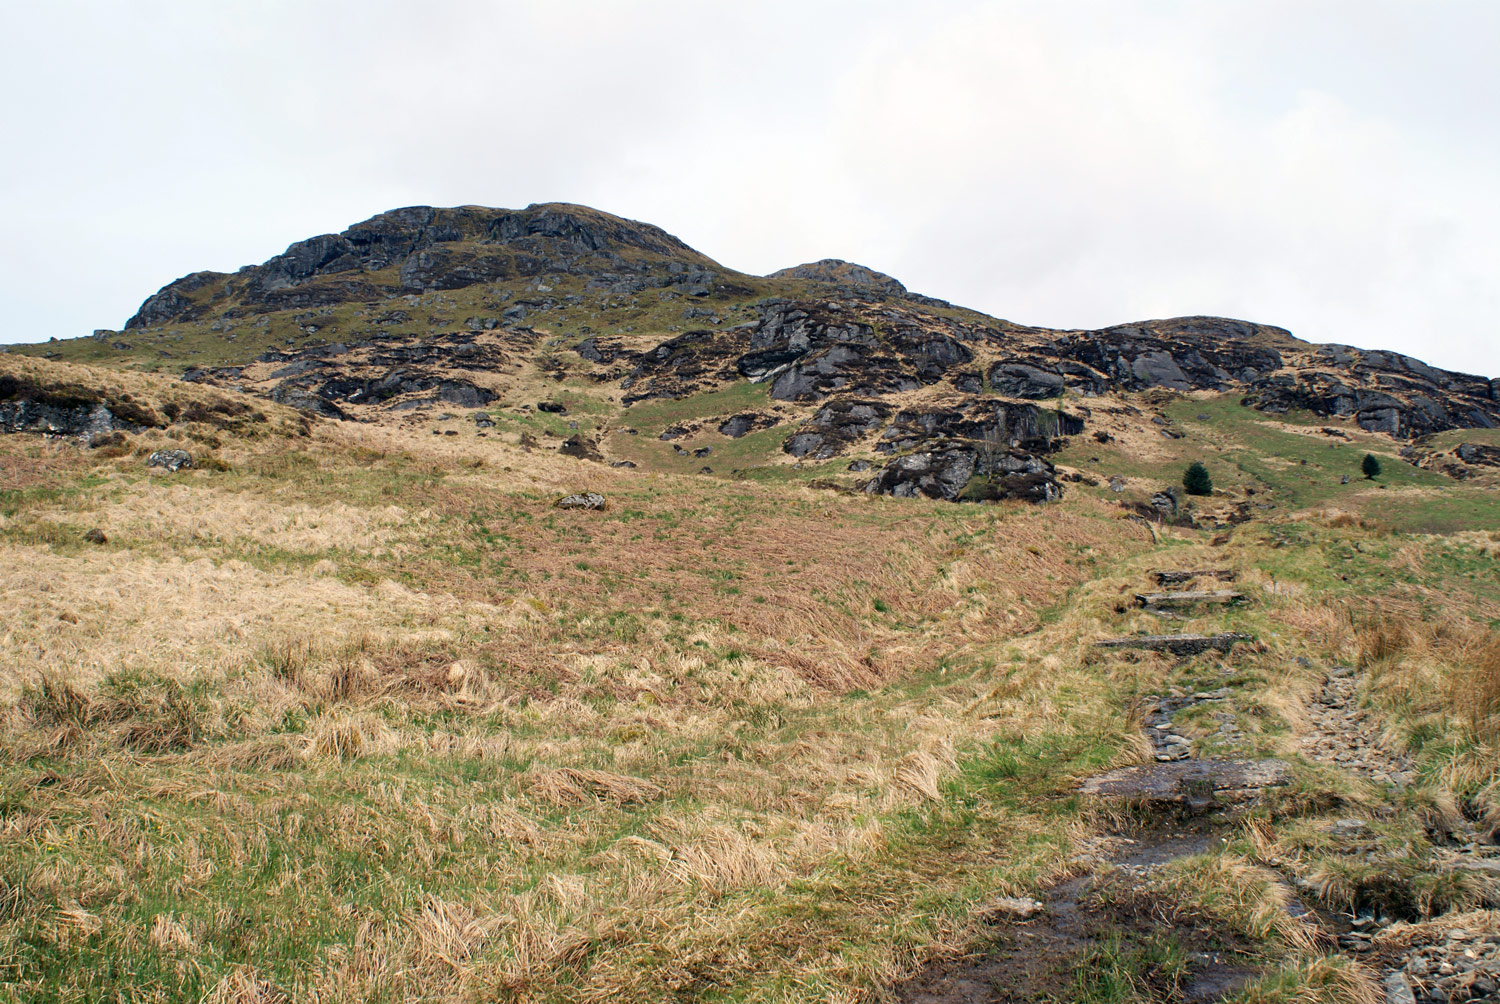 The path leads to the first real rocky section of the route with a little bit of scrambling needed.